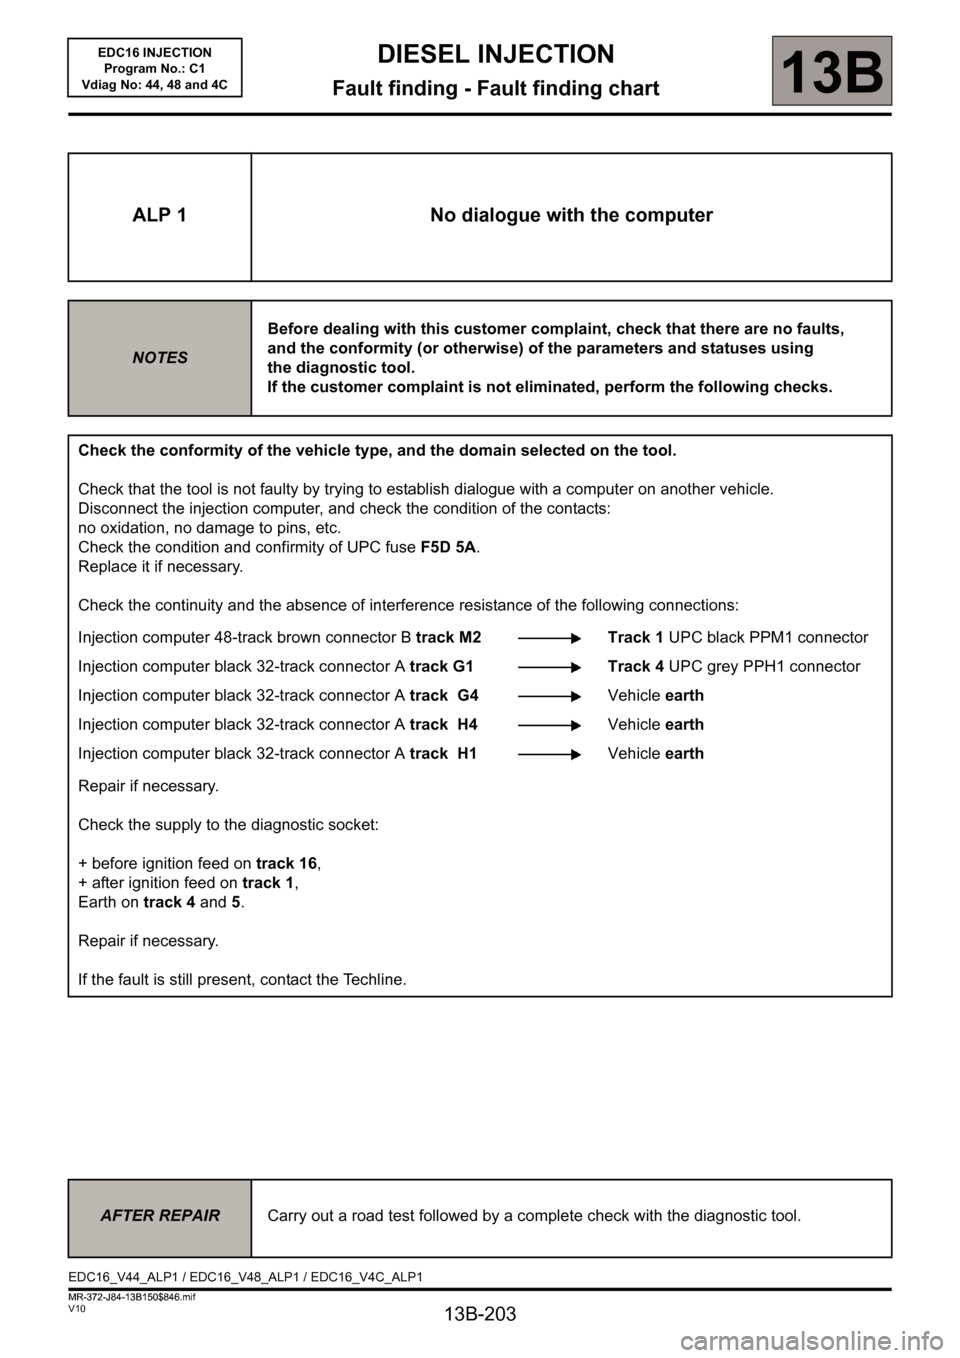 RENAULT SCENIC 2011 J95 / 3.G Engine And Peripherals EDC16 Injection Workshop Manual, Page 203